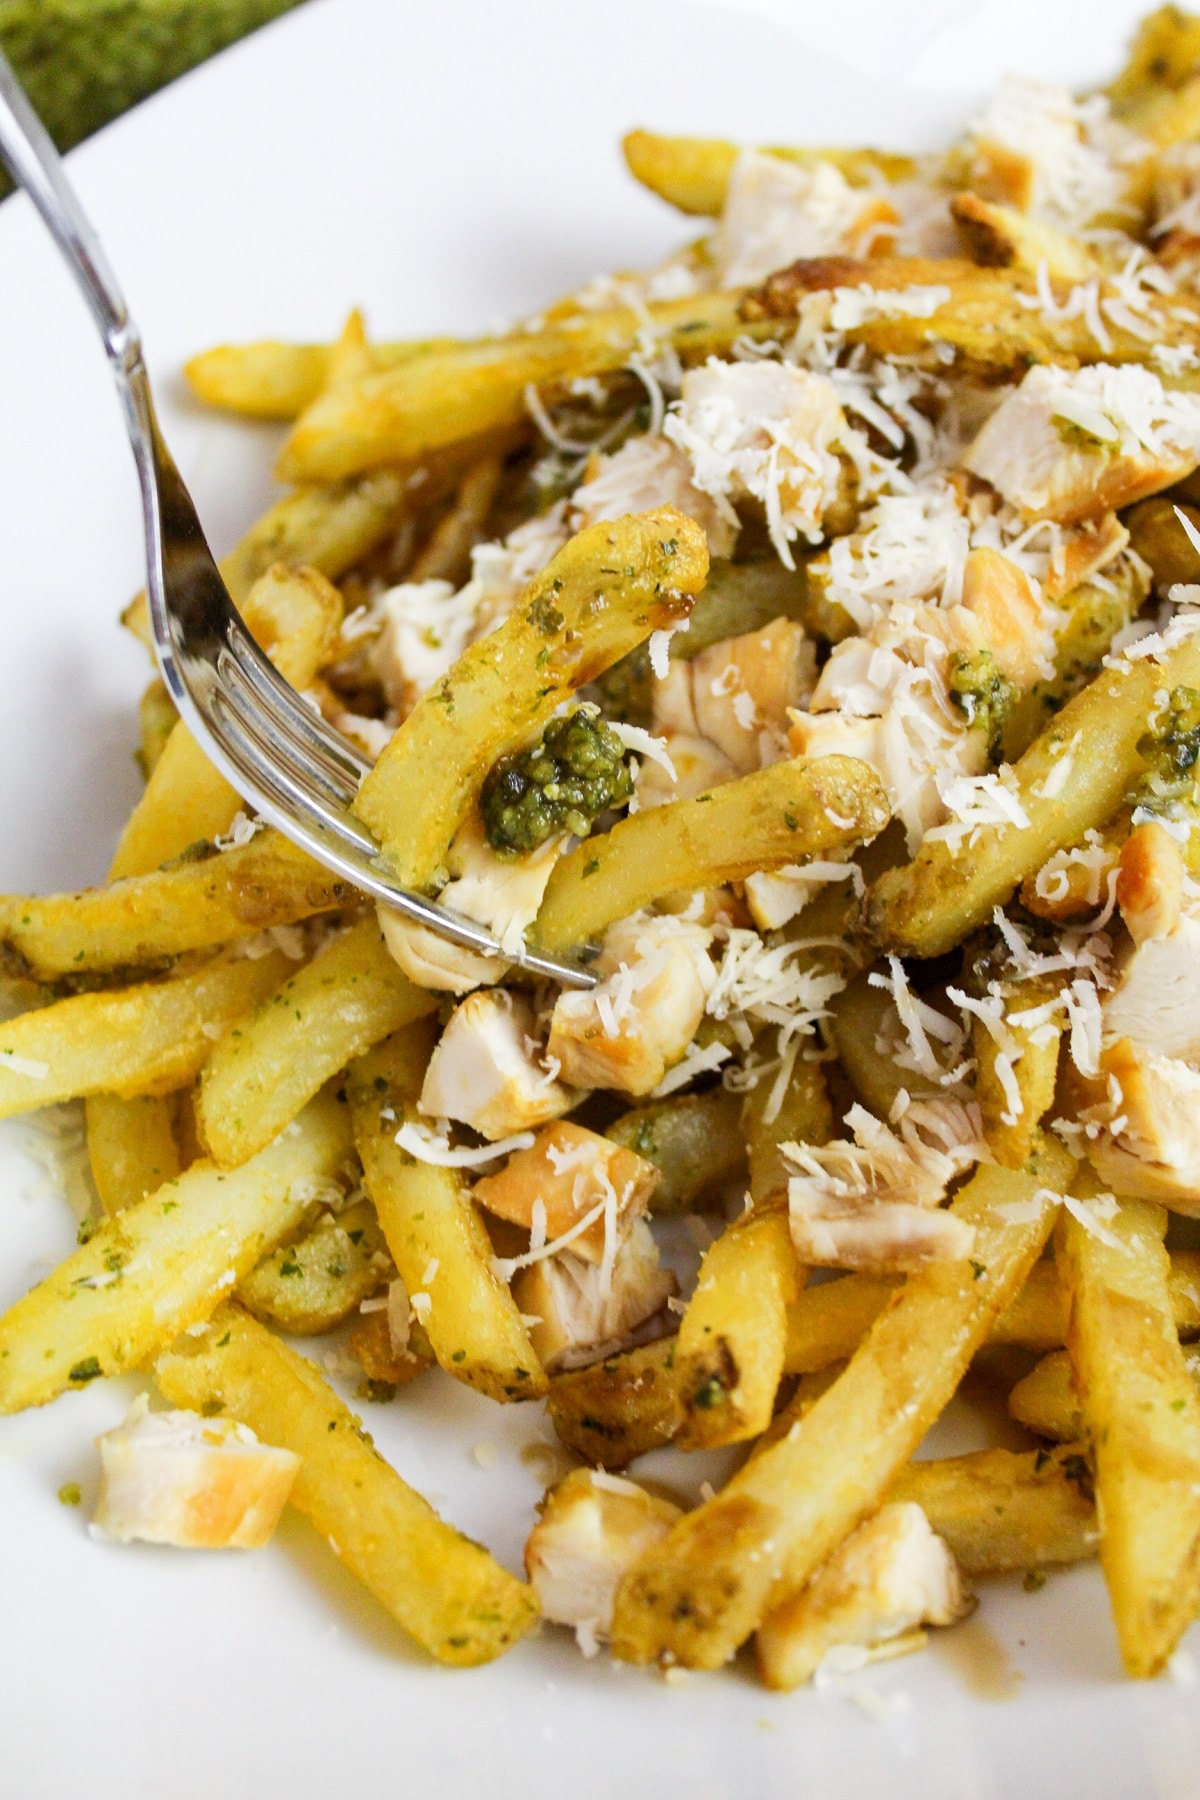 Pesto Chicken Fries on fork